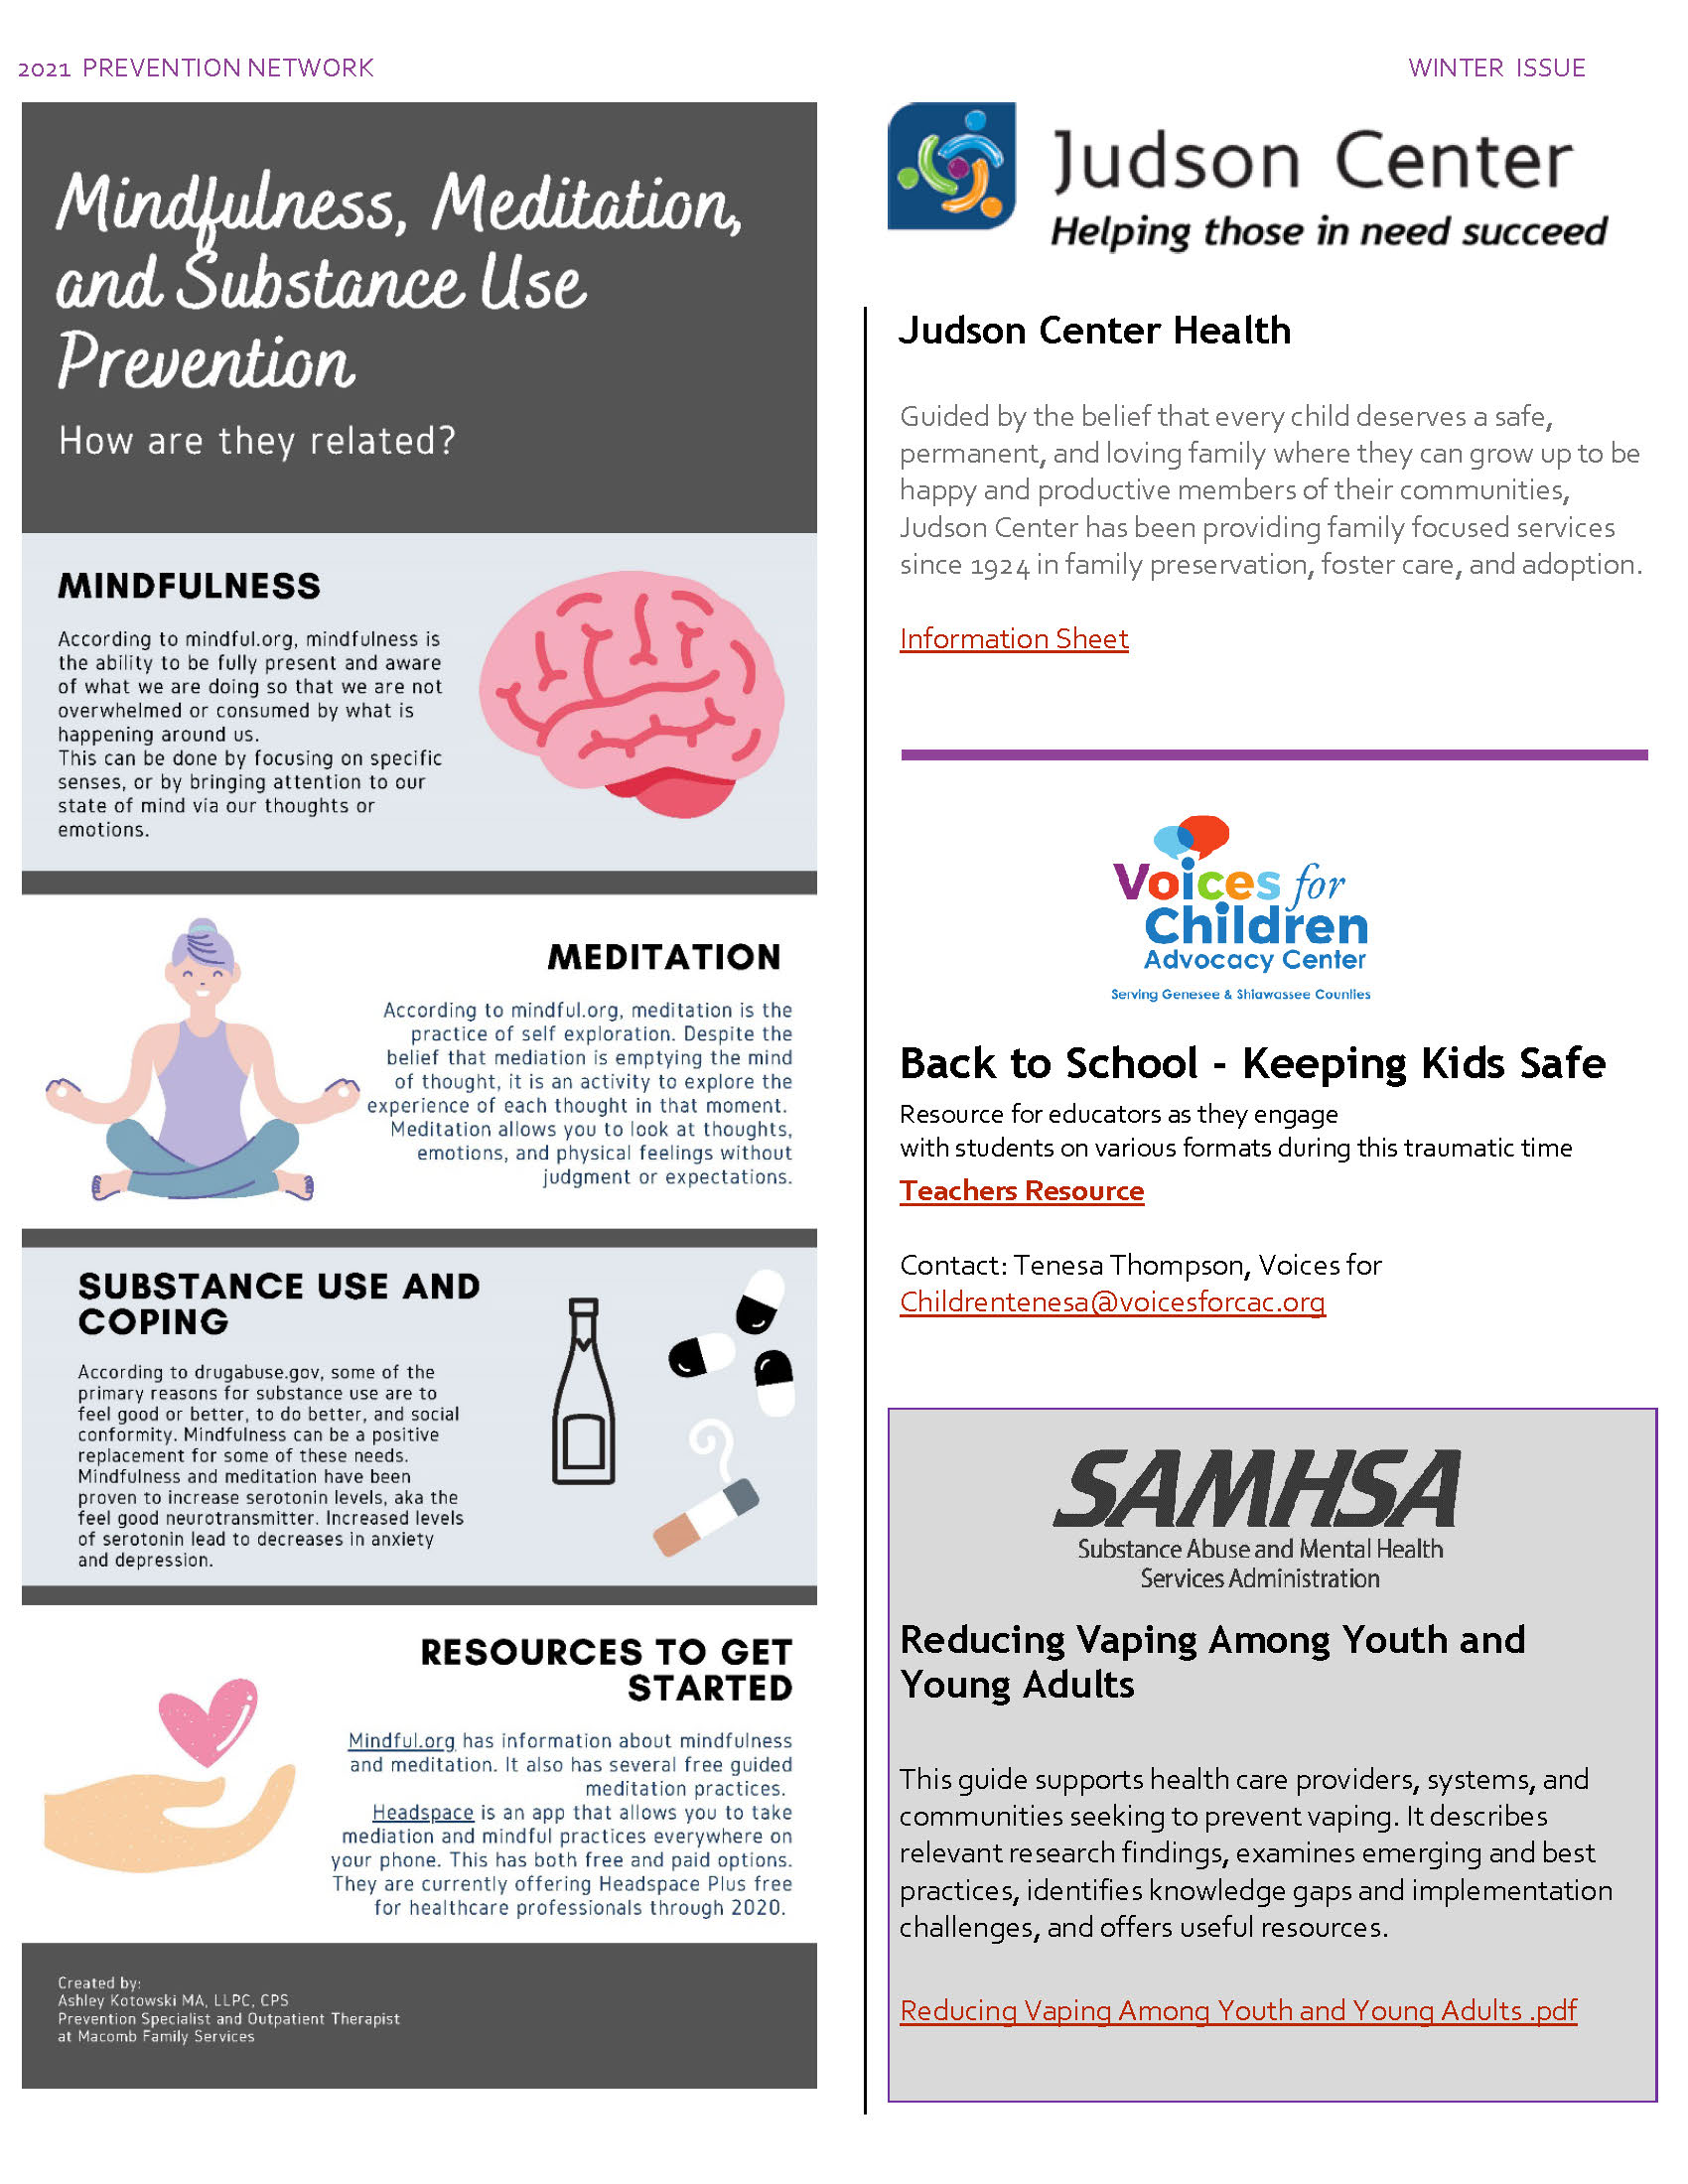 Mindfulness, Judson Center, Voices for Children Advocacy Center, and Reduce Vaping Among Youth